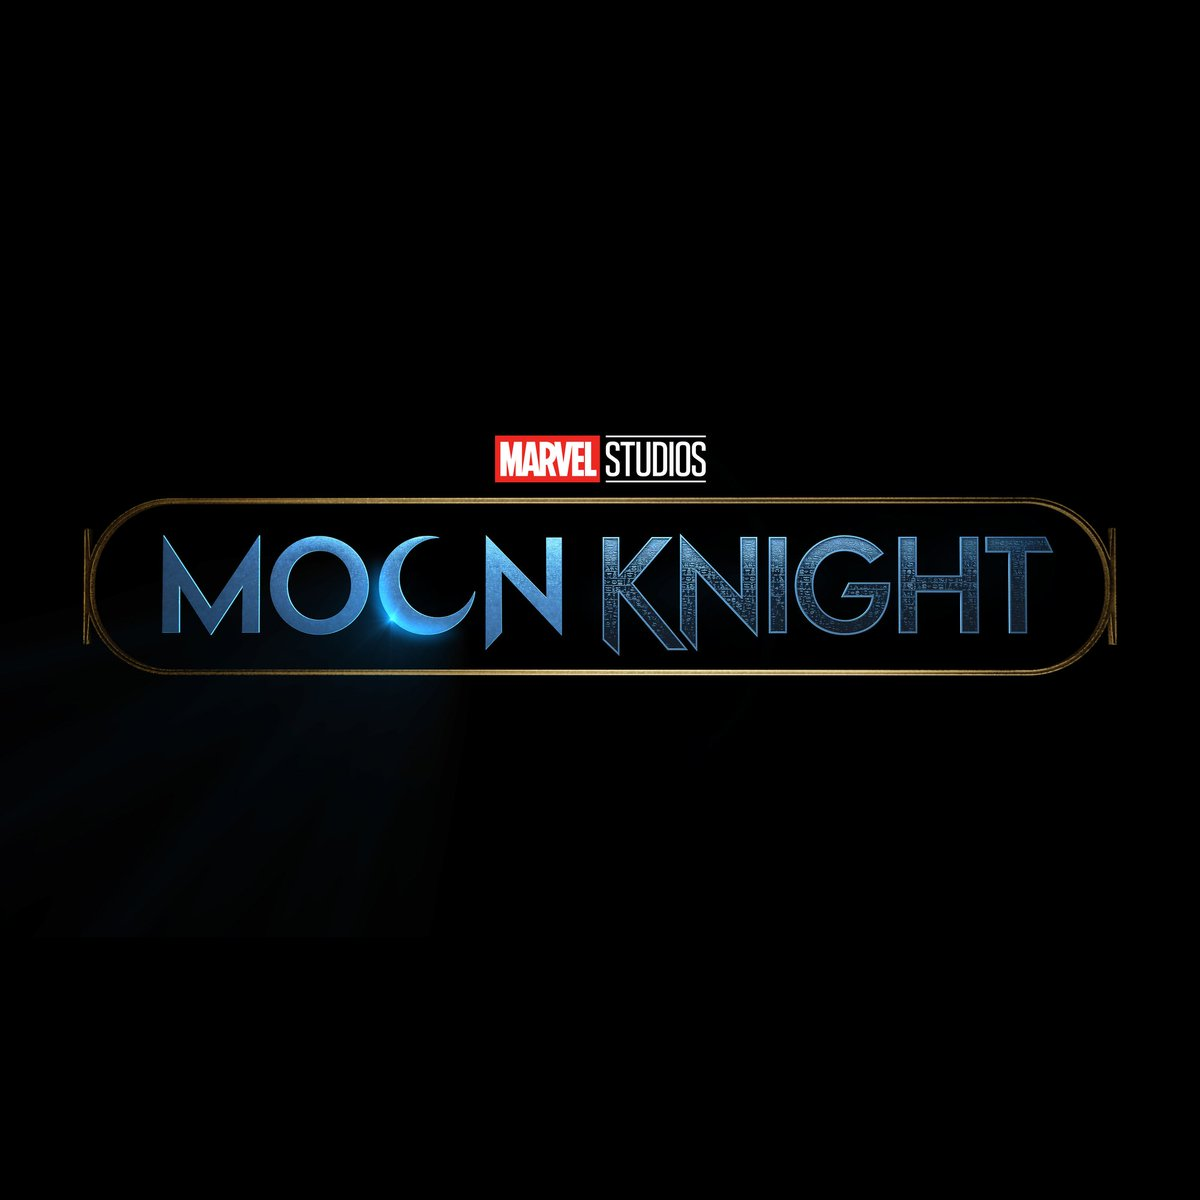 Just announced at #D23Expo, MOON KNIGHT, an original series from Marvel Studios, only on Disney+